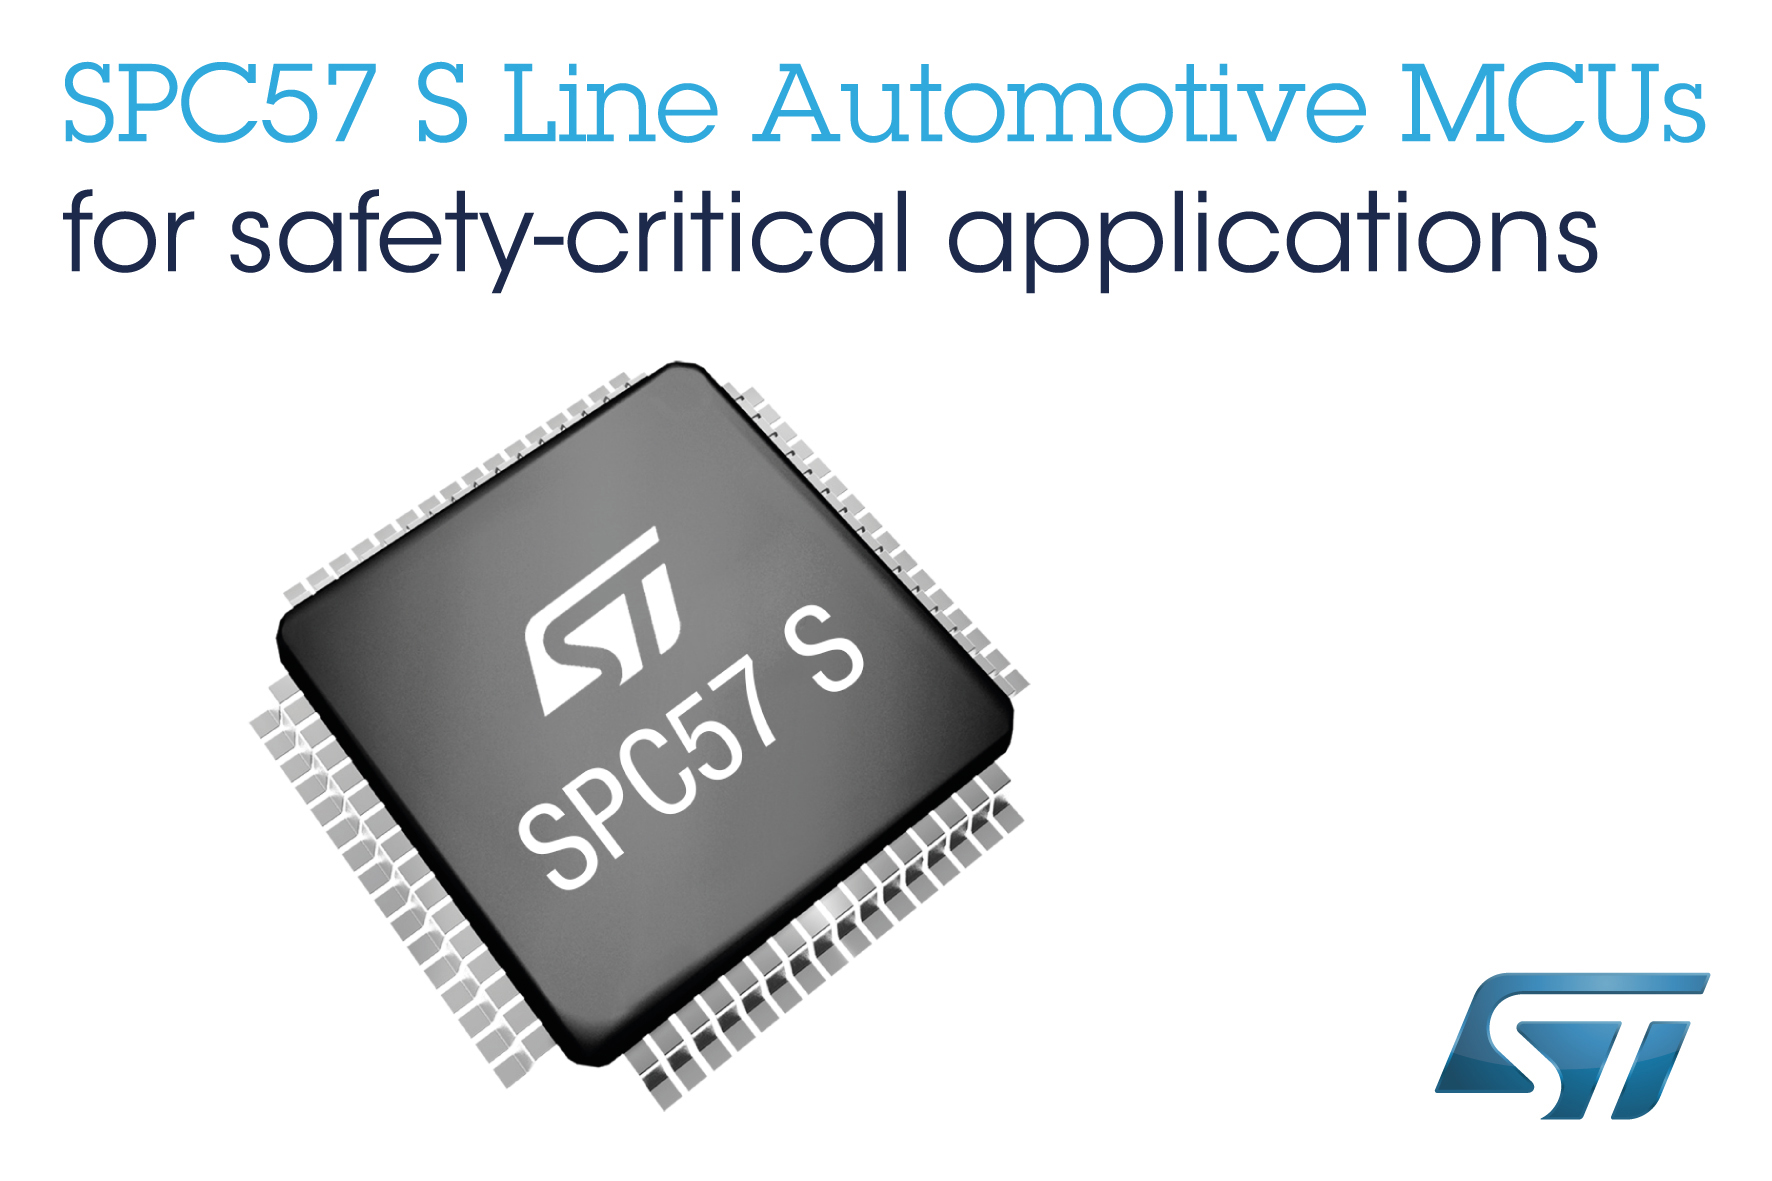 New Automotive Microcontrollers From Stmicroelectronics Enhance Programmable Logic Content Electronic Design The Are System On Chip Soc Devices Designed To Meet Challenges Of Entry Level Vehicle Safety Critical Applications